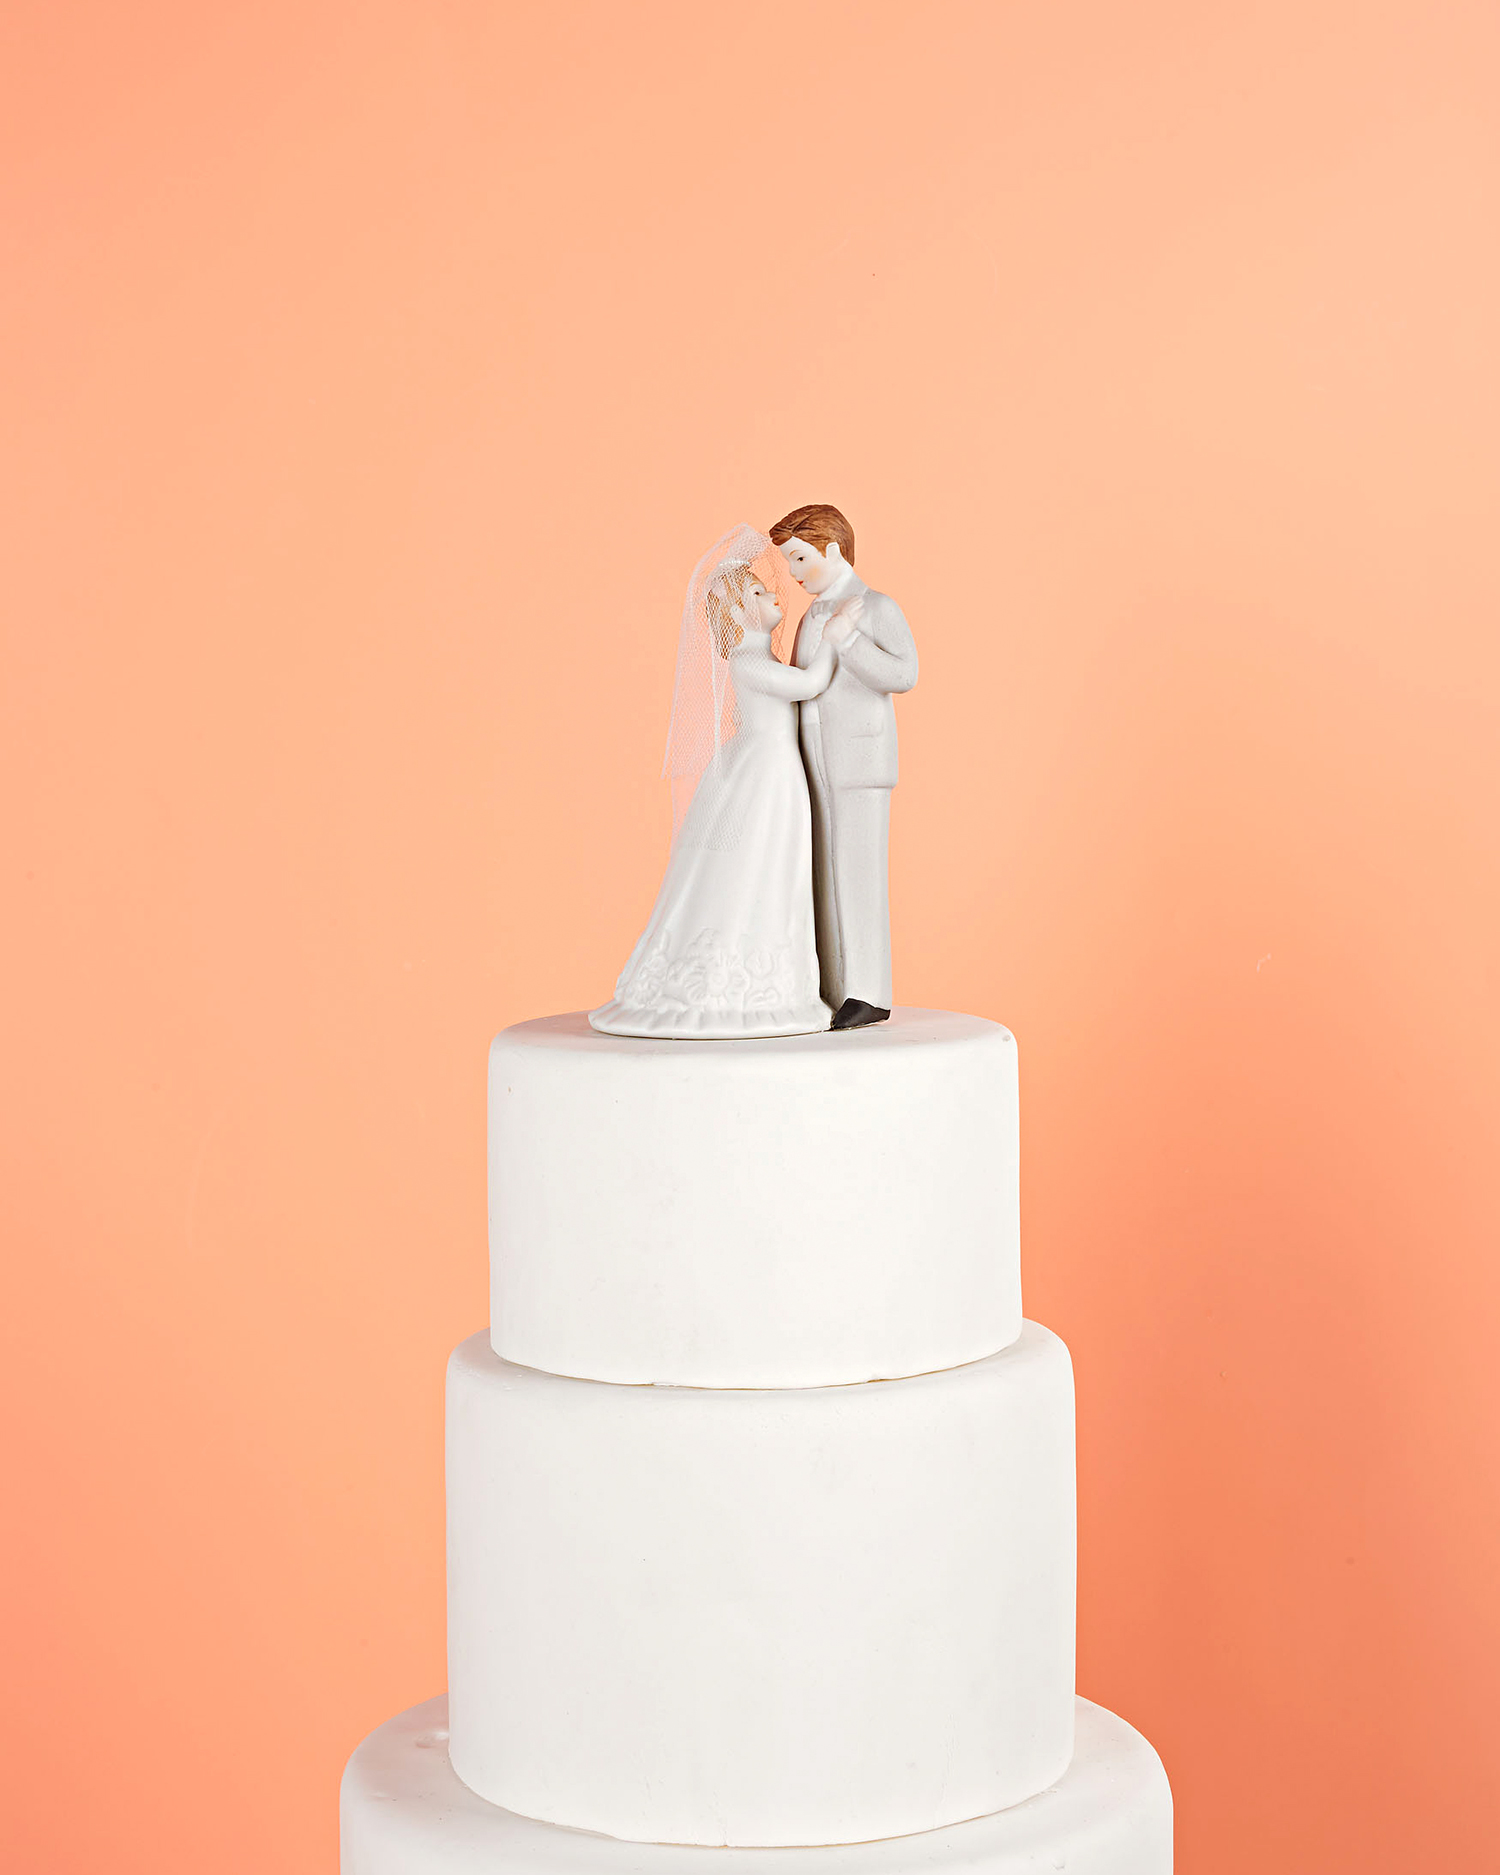 How to Deal with an Injury Before Your Wedding